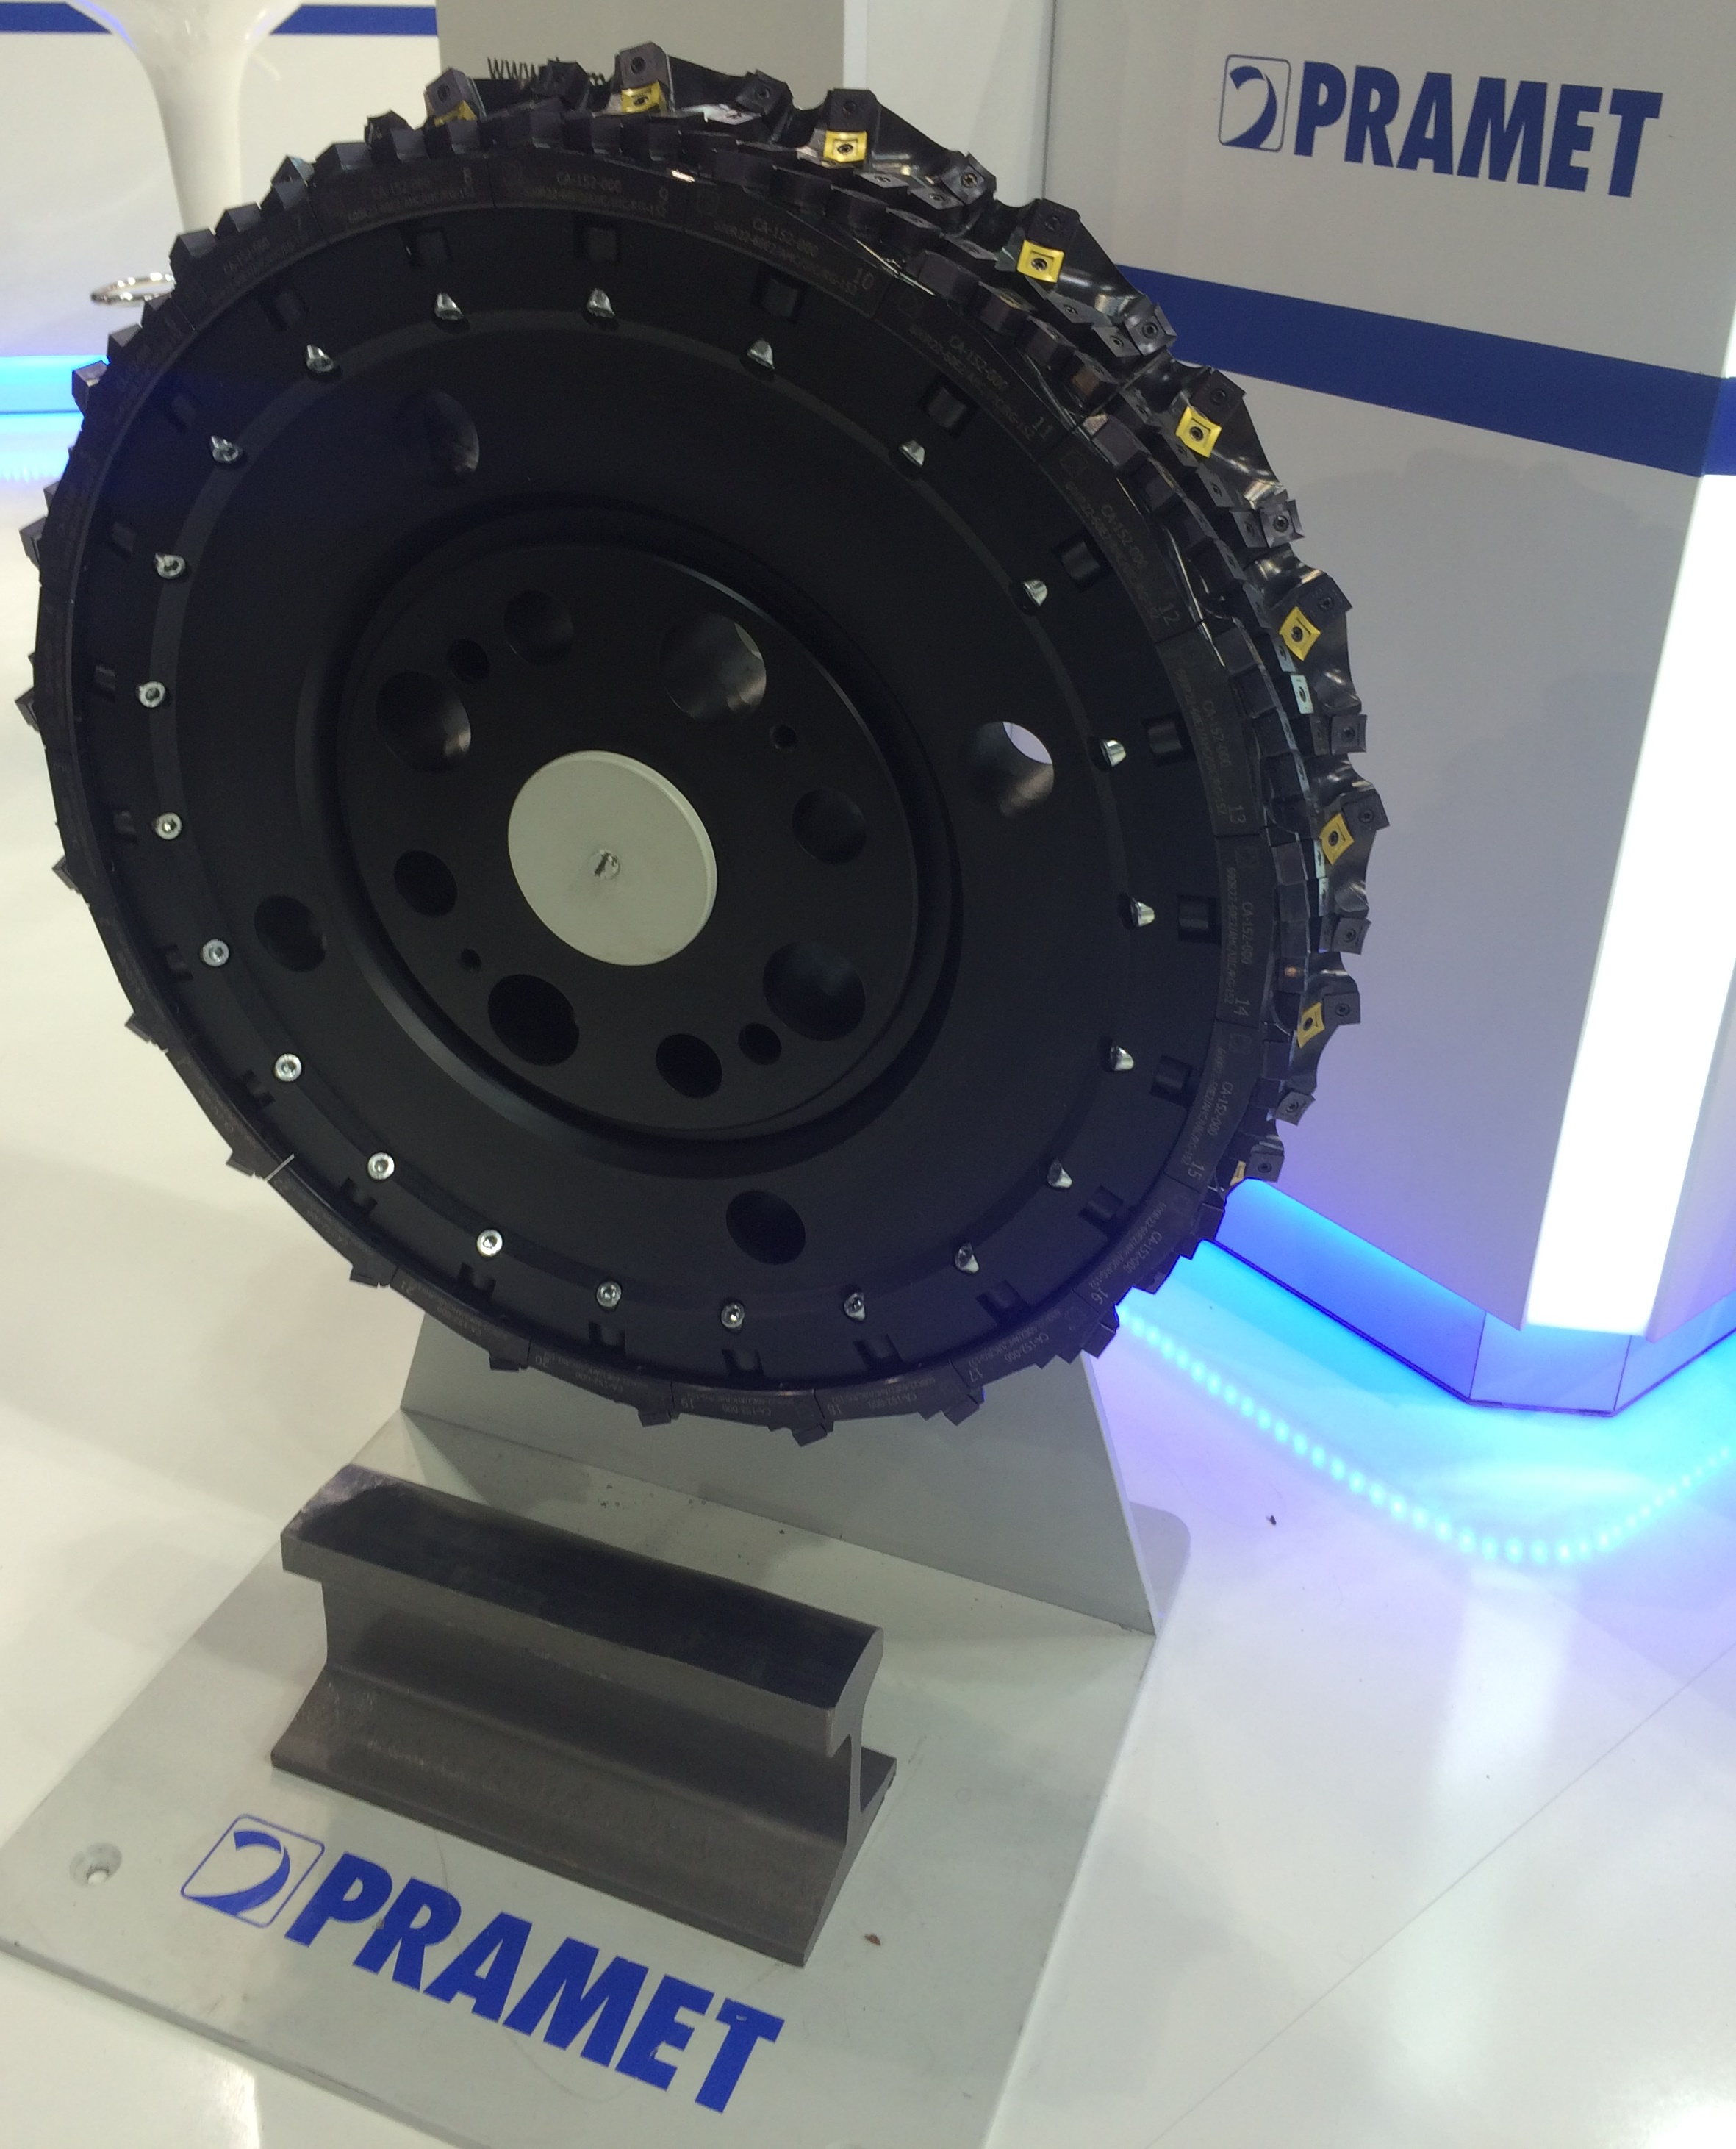 The Pramet dynamic rail milling cutter